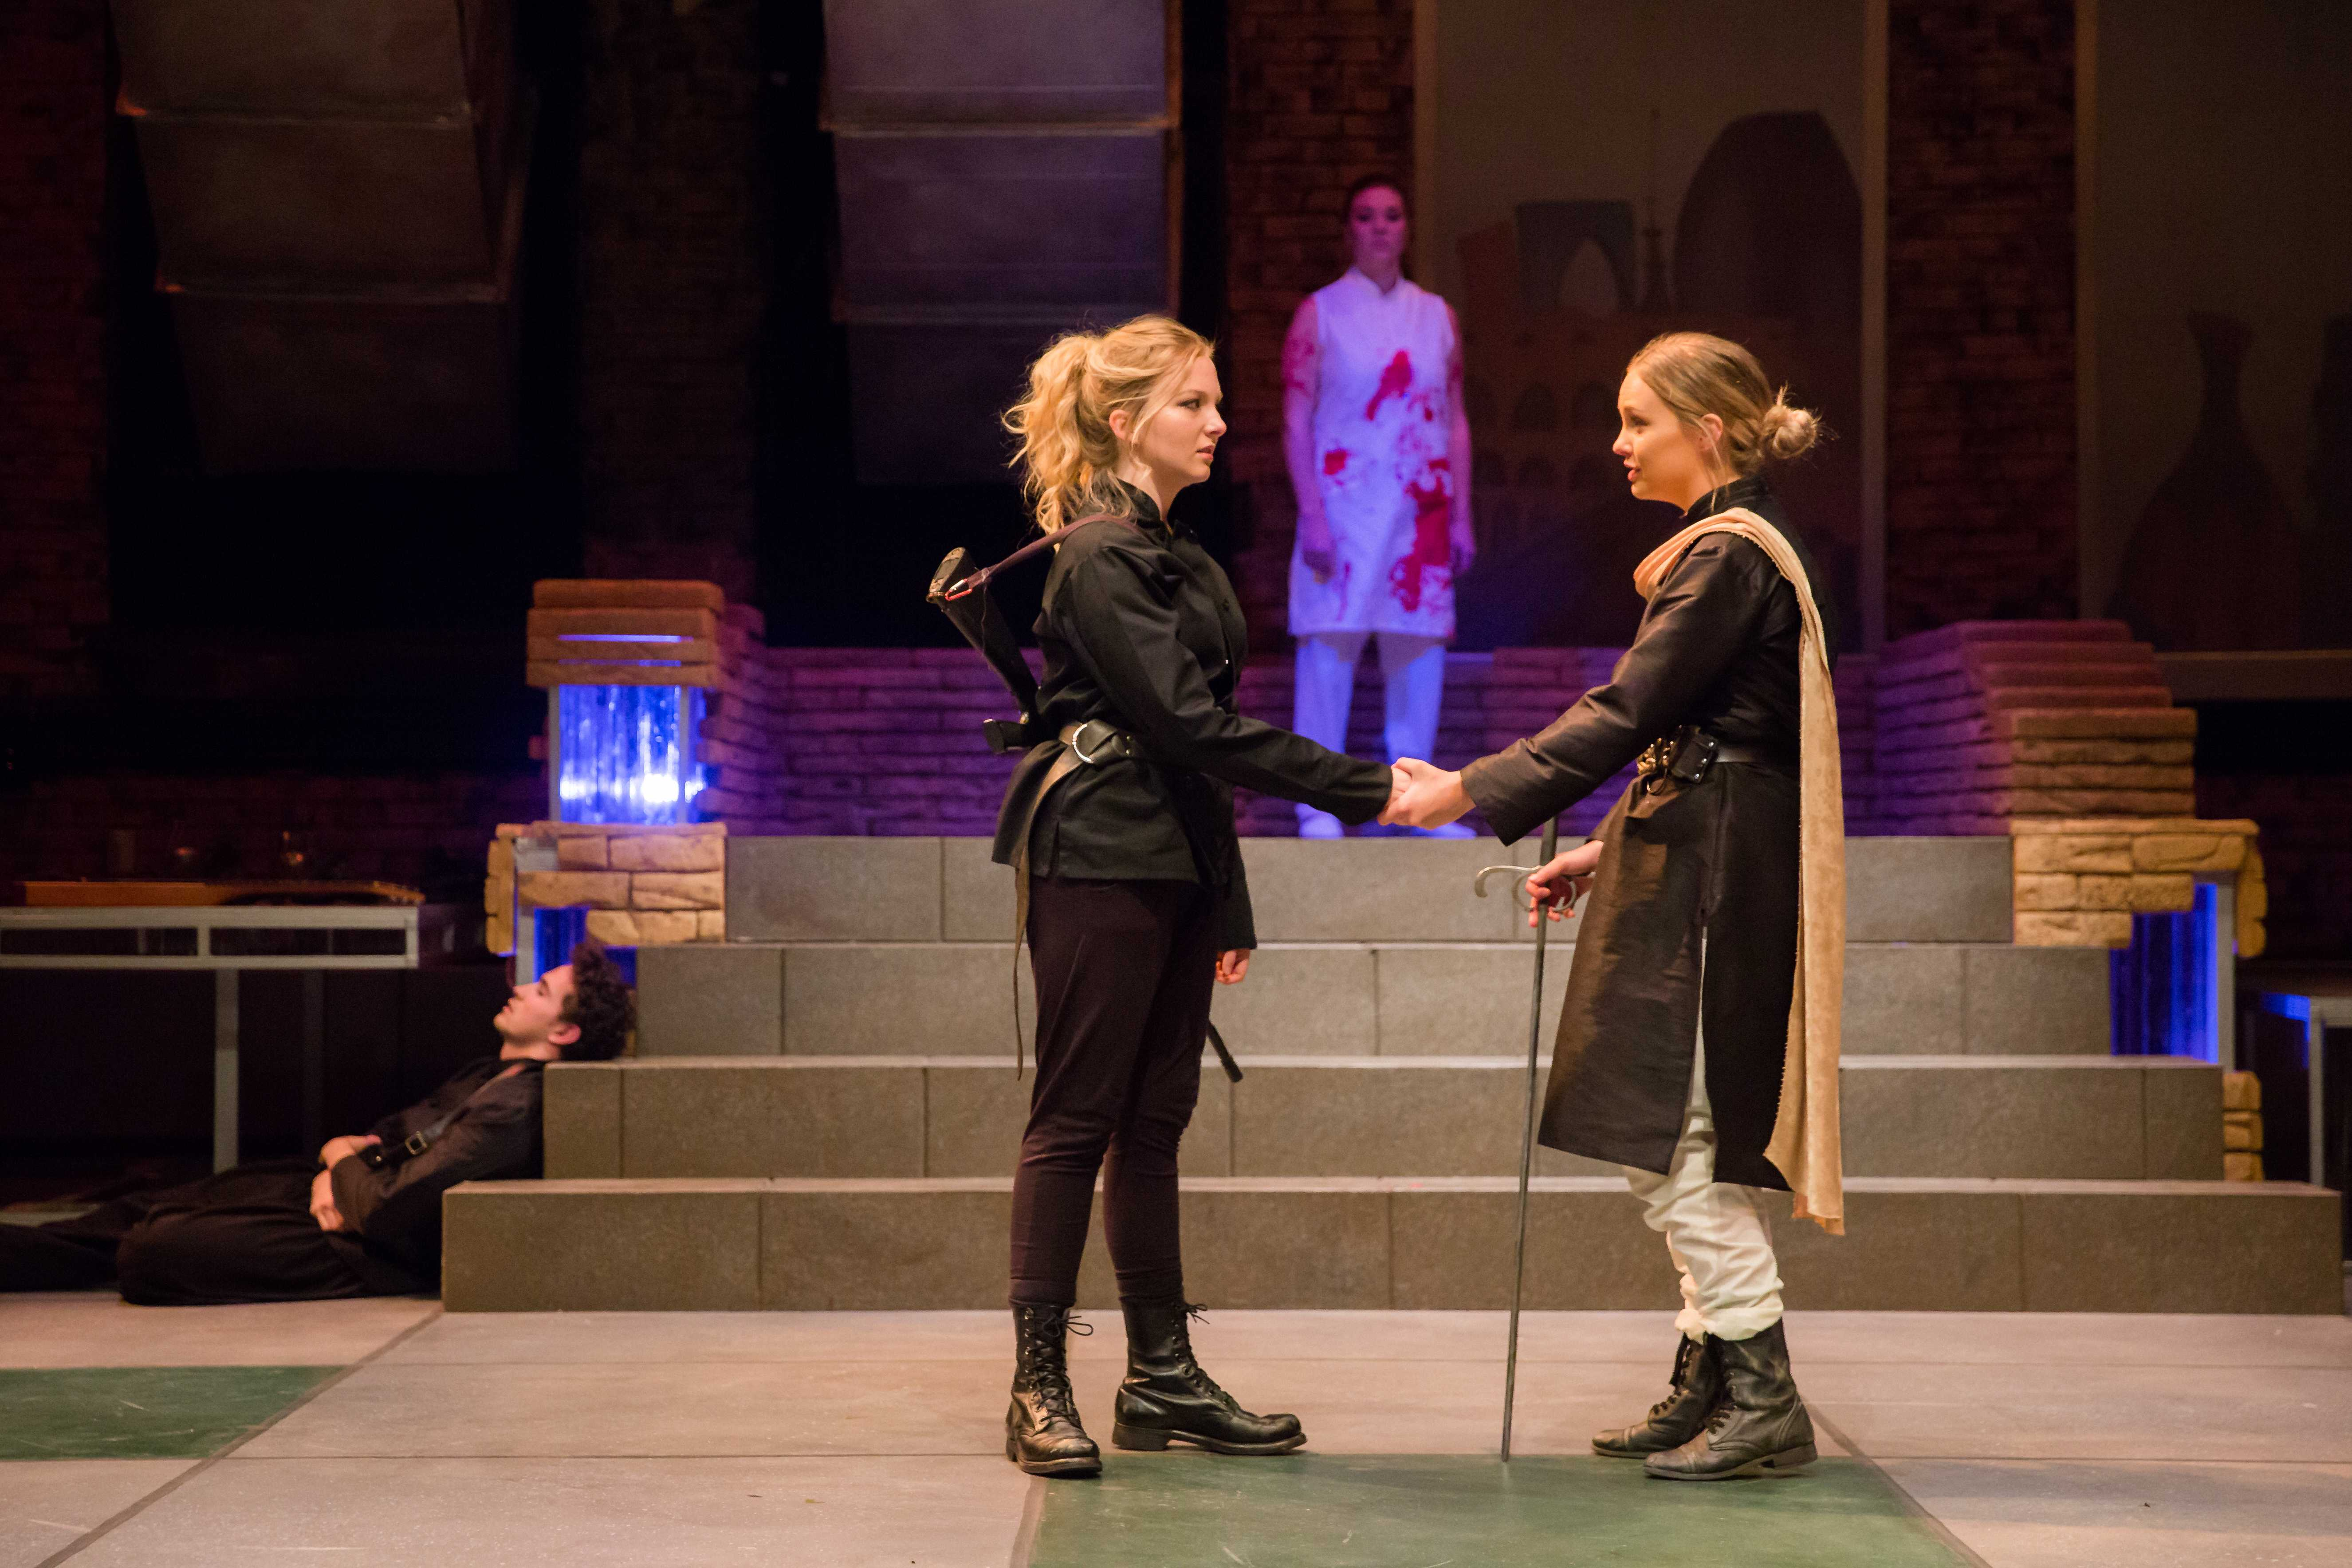 Selah McKenna (left) and Lindsie Kongsore (right) in the University of Utah's production of Julius Caesar (Photo by Todd Collins)